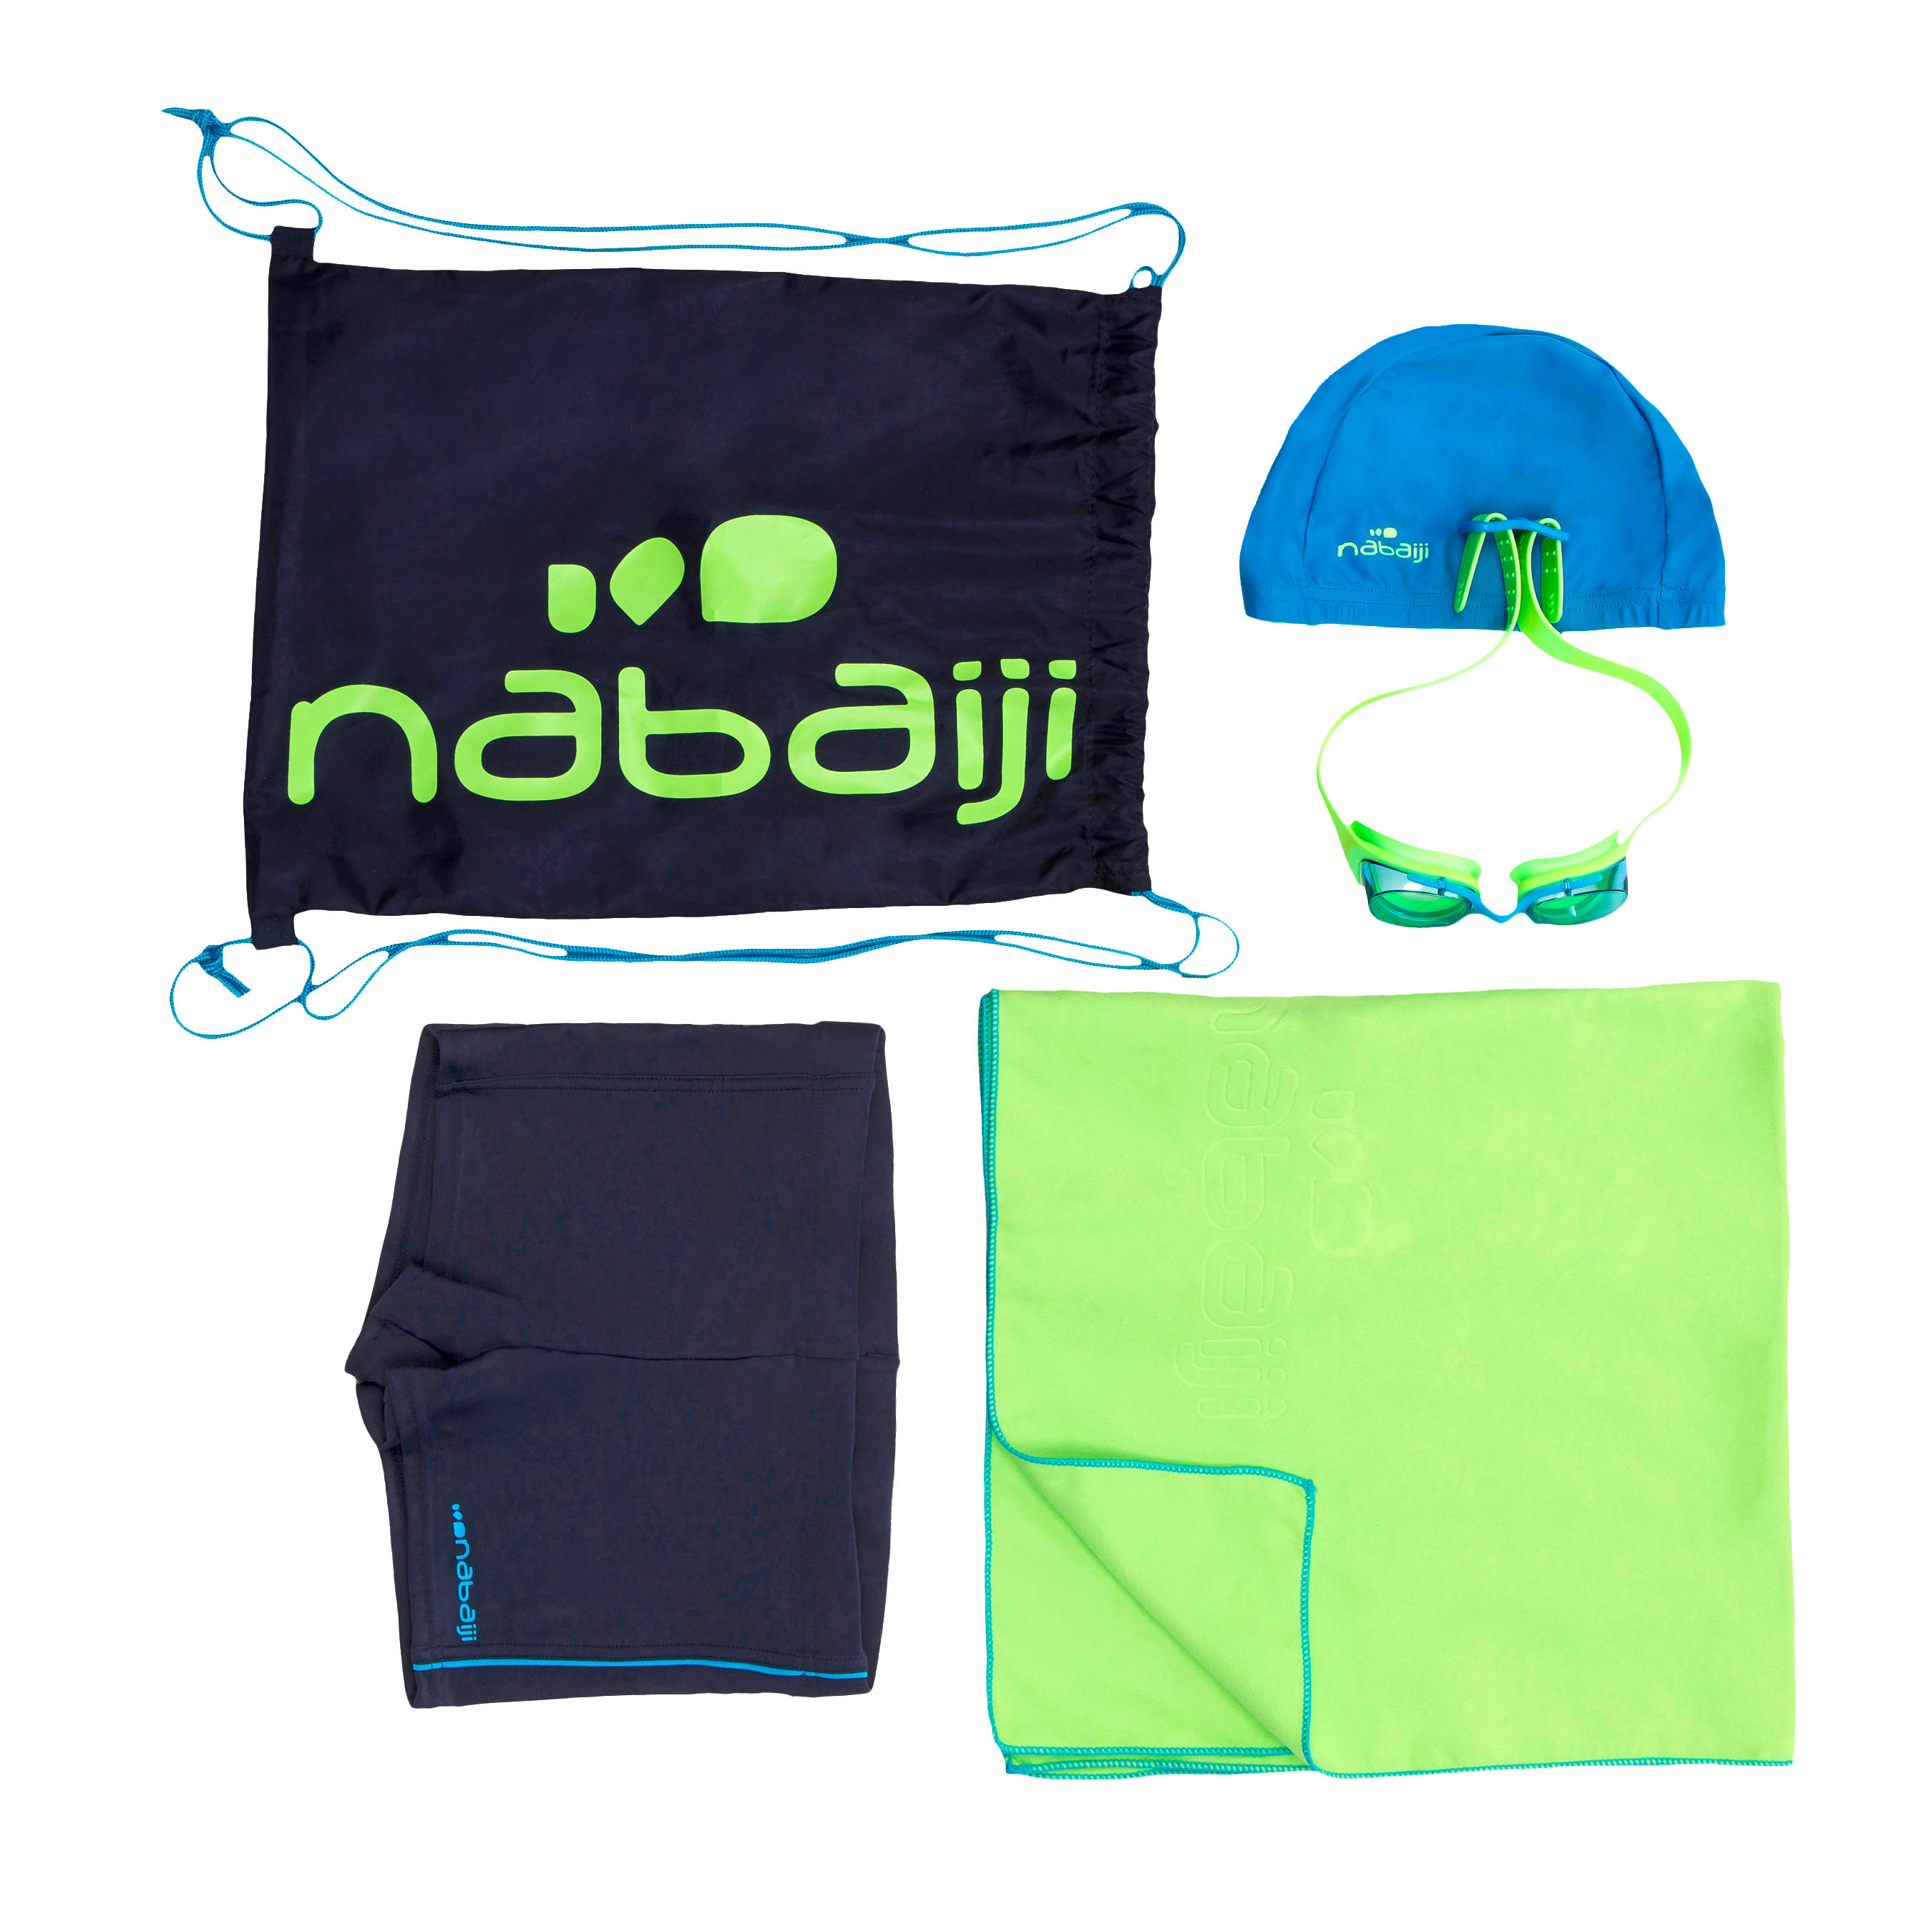 nabaiji maillot de bain lunettes de natation serviette sac pack b active vert decathlon. Black Bedroom Furniture Sets. Home Design Ideas